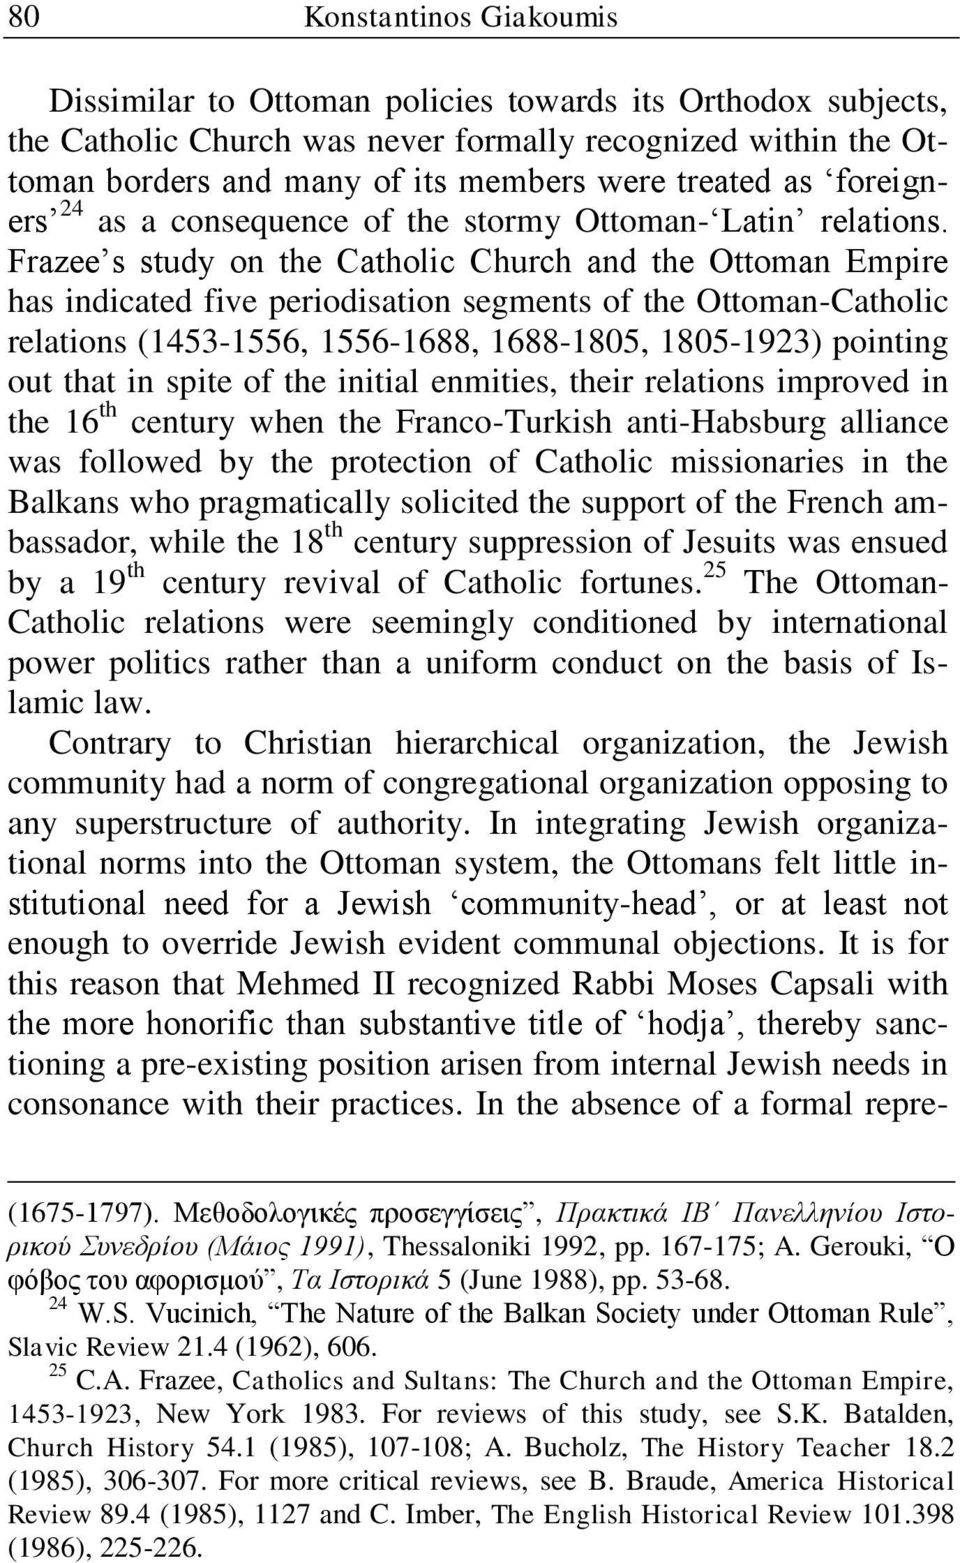 Frazee s study on the Catholic Church and the Ottoman Empire has indicated five periodisation segments of the Ottoman-Catholic relations (1453-1556, 1556-1688, 1688-1805, 1805-1923) pointing out that